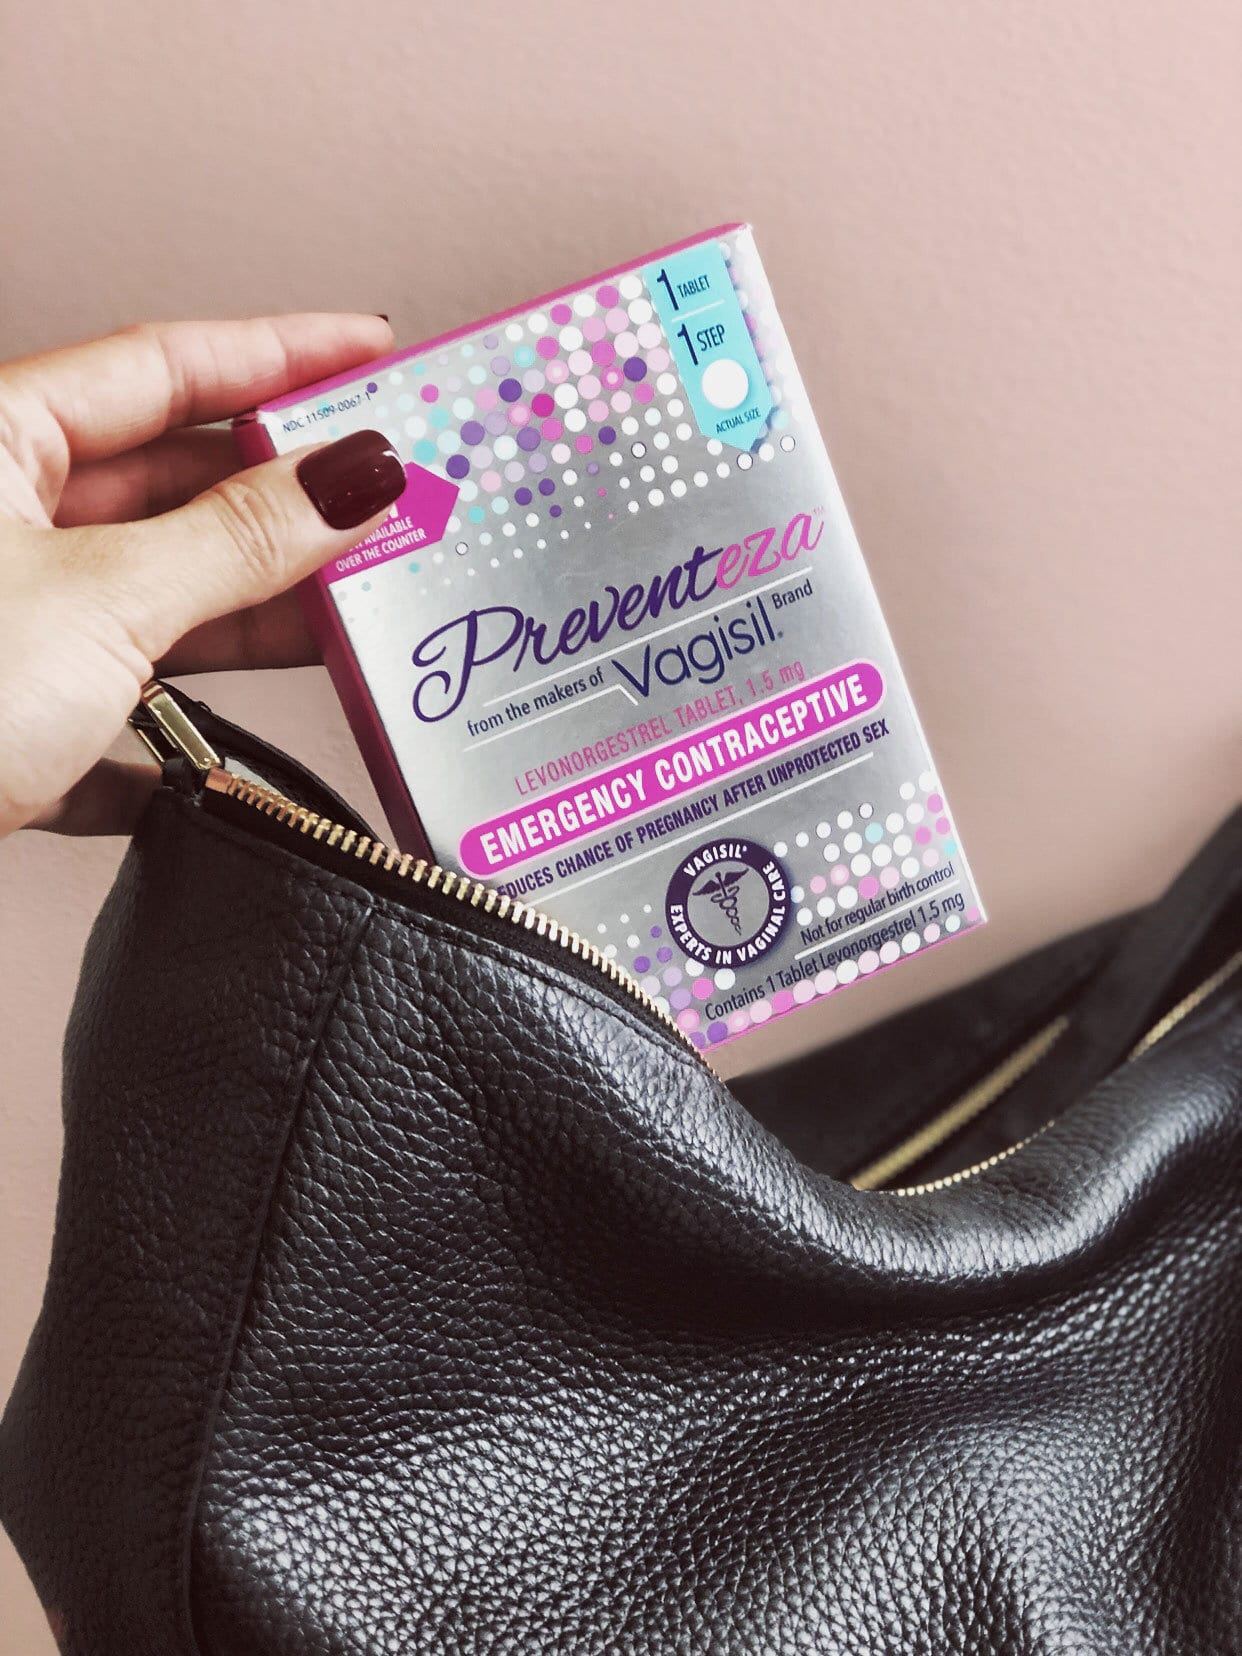 The Top 3 Reasons Why Preventeza™ Helps You Become Prepared and Powerful - Nylon Pink - 웹